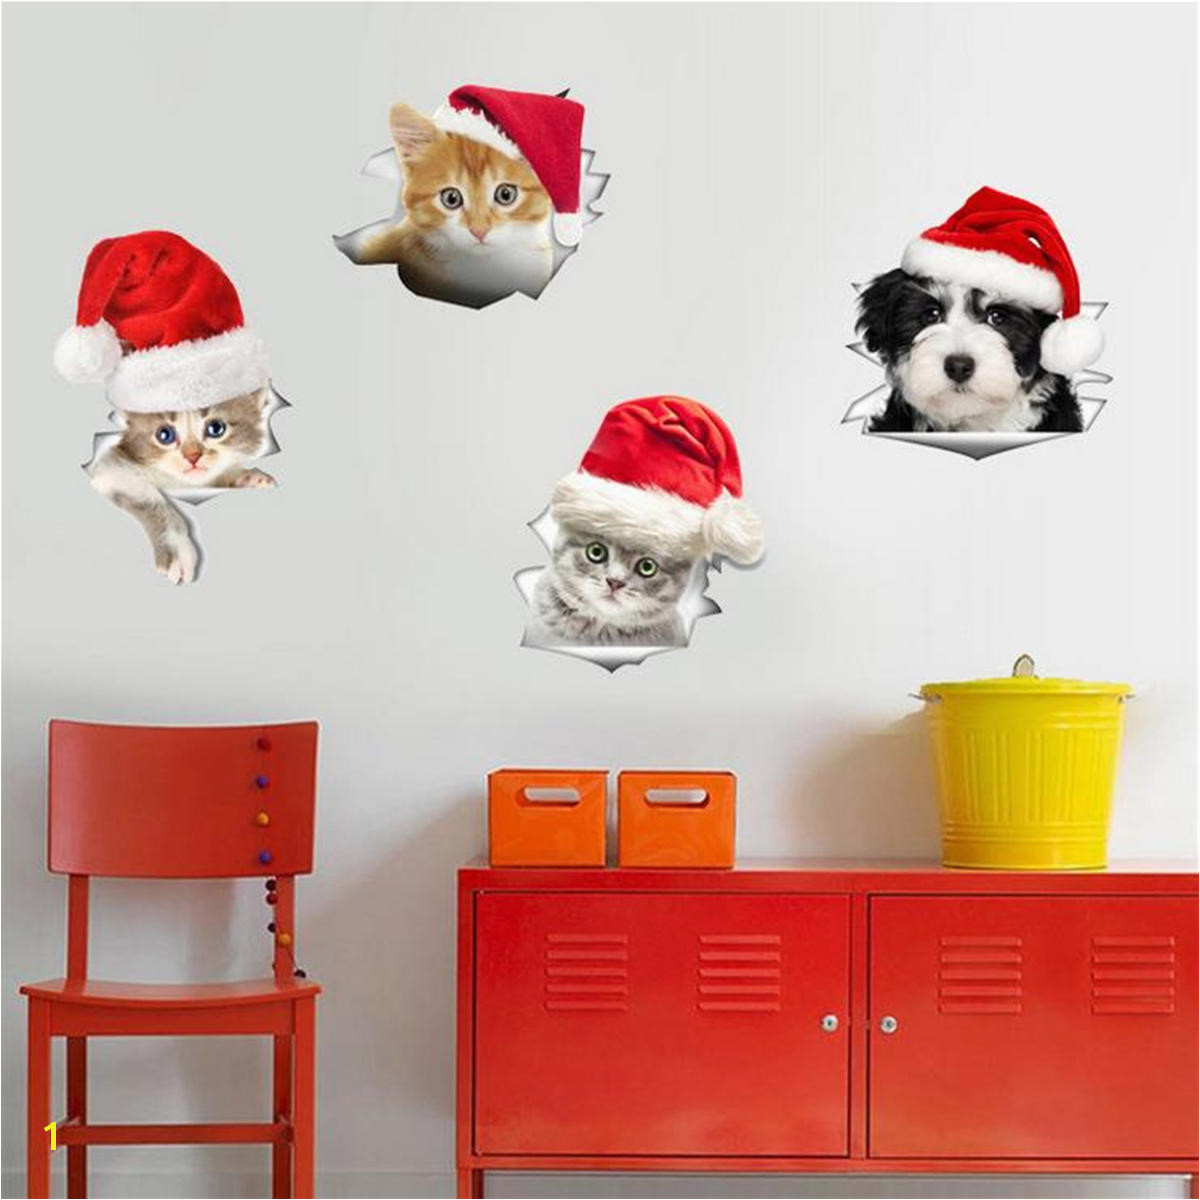 Christmas PVC Mural Wall Fridge Stickers Toilet Stool Poster Decals Home Decor Sticker COD